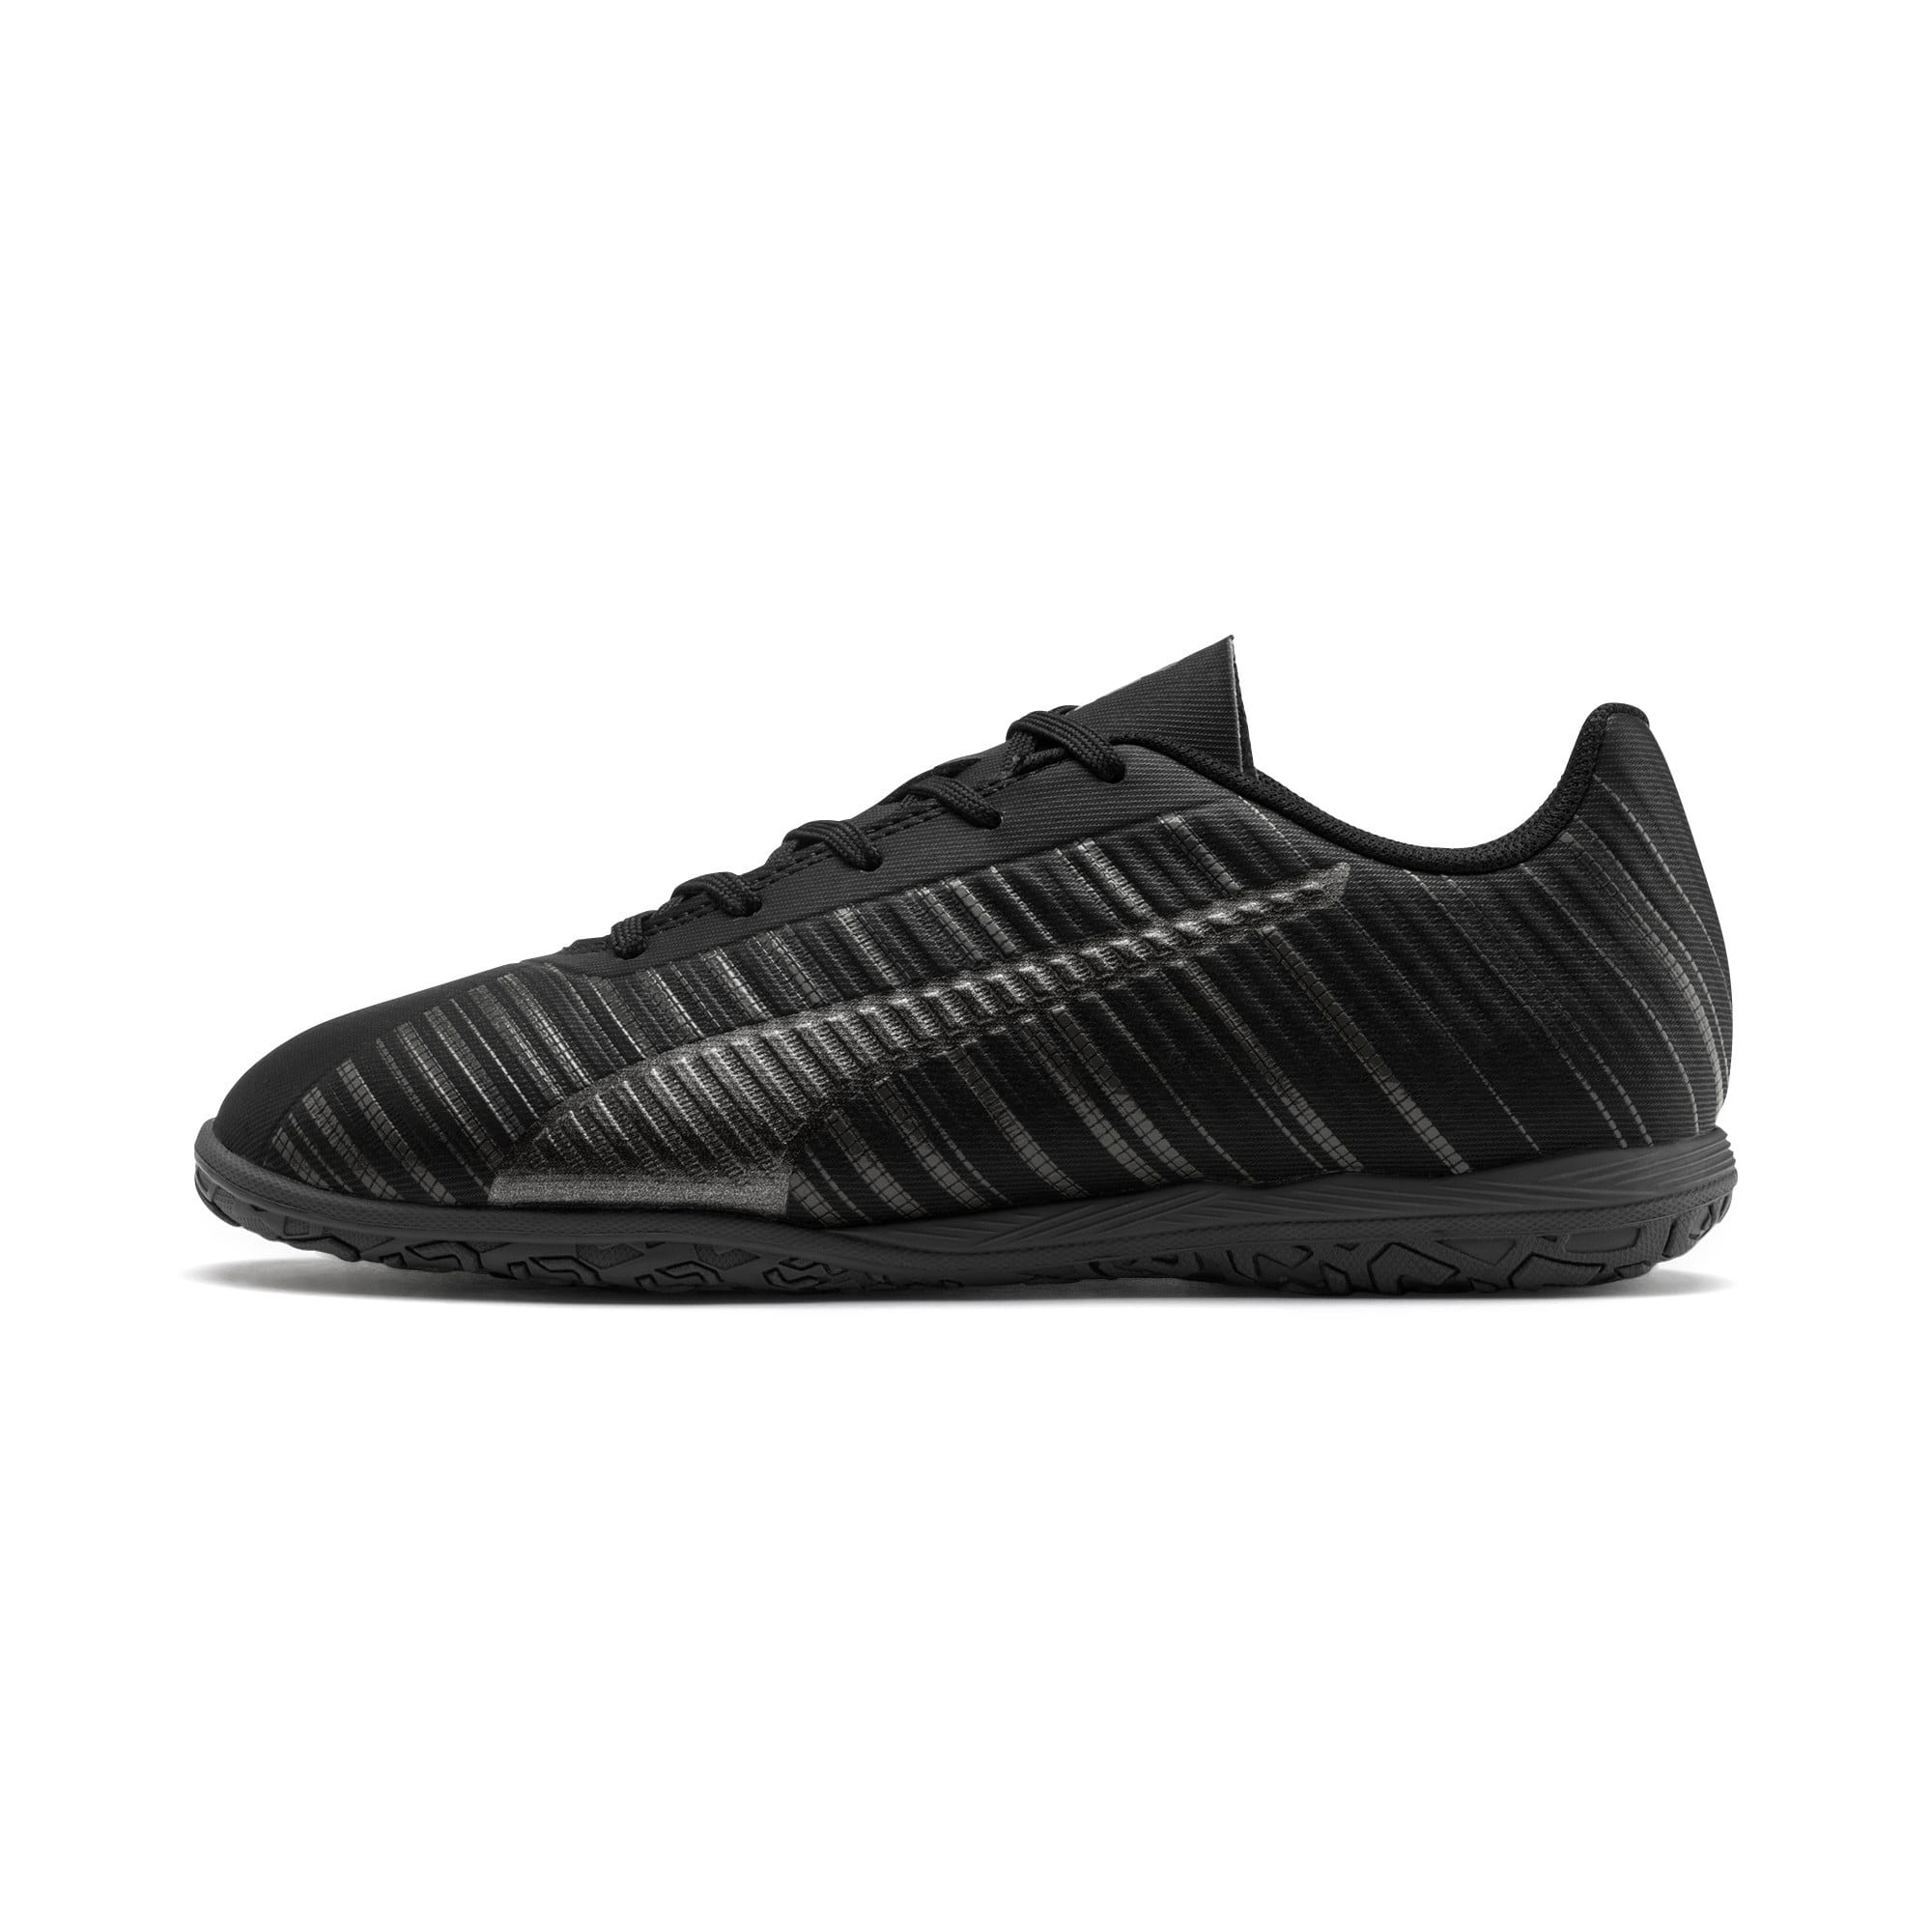 Thumbnail 1 of PUMA ONE 5.4 IT Youth Football Boots, Black-Black-Puma Aged Silver, medium